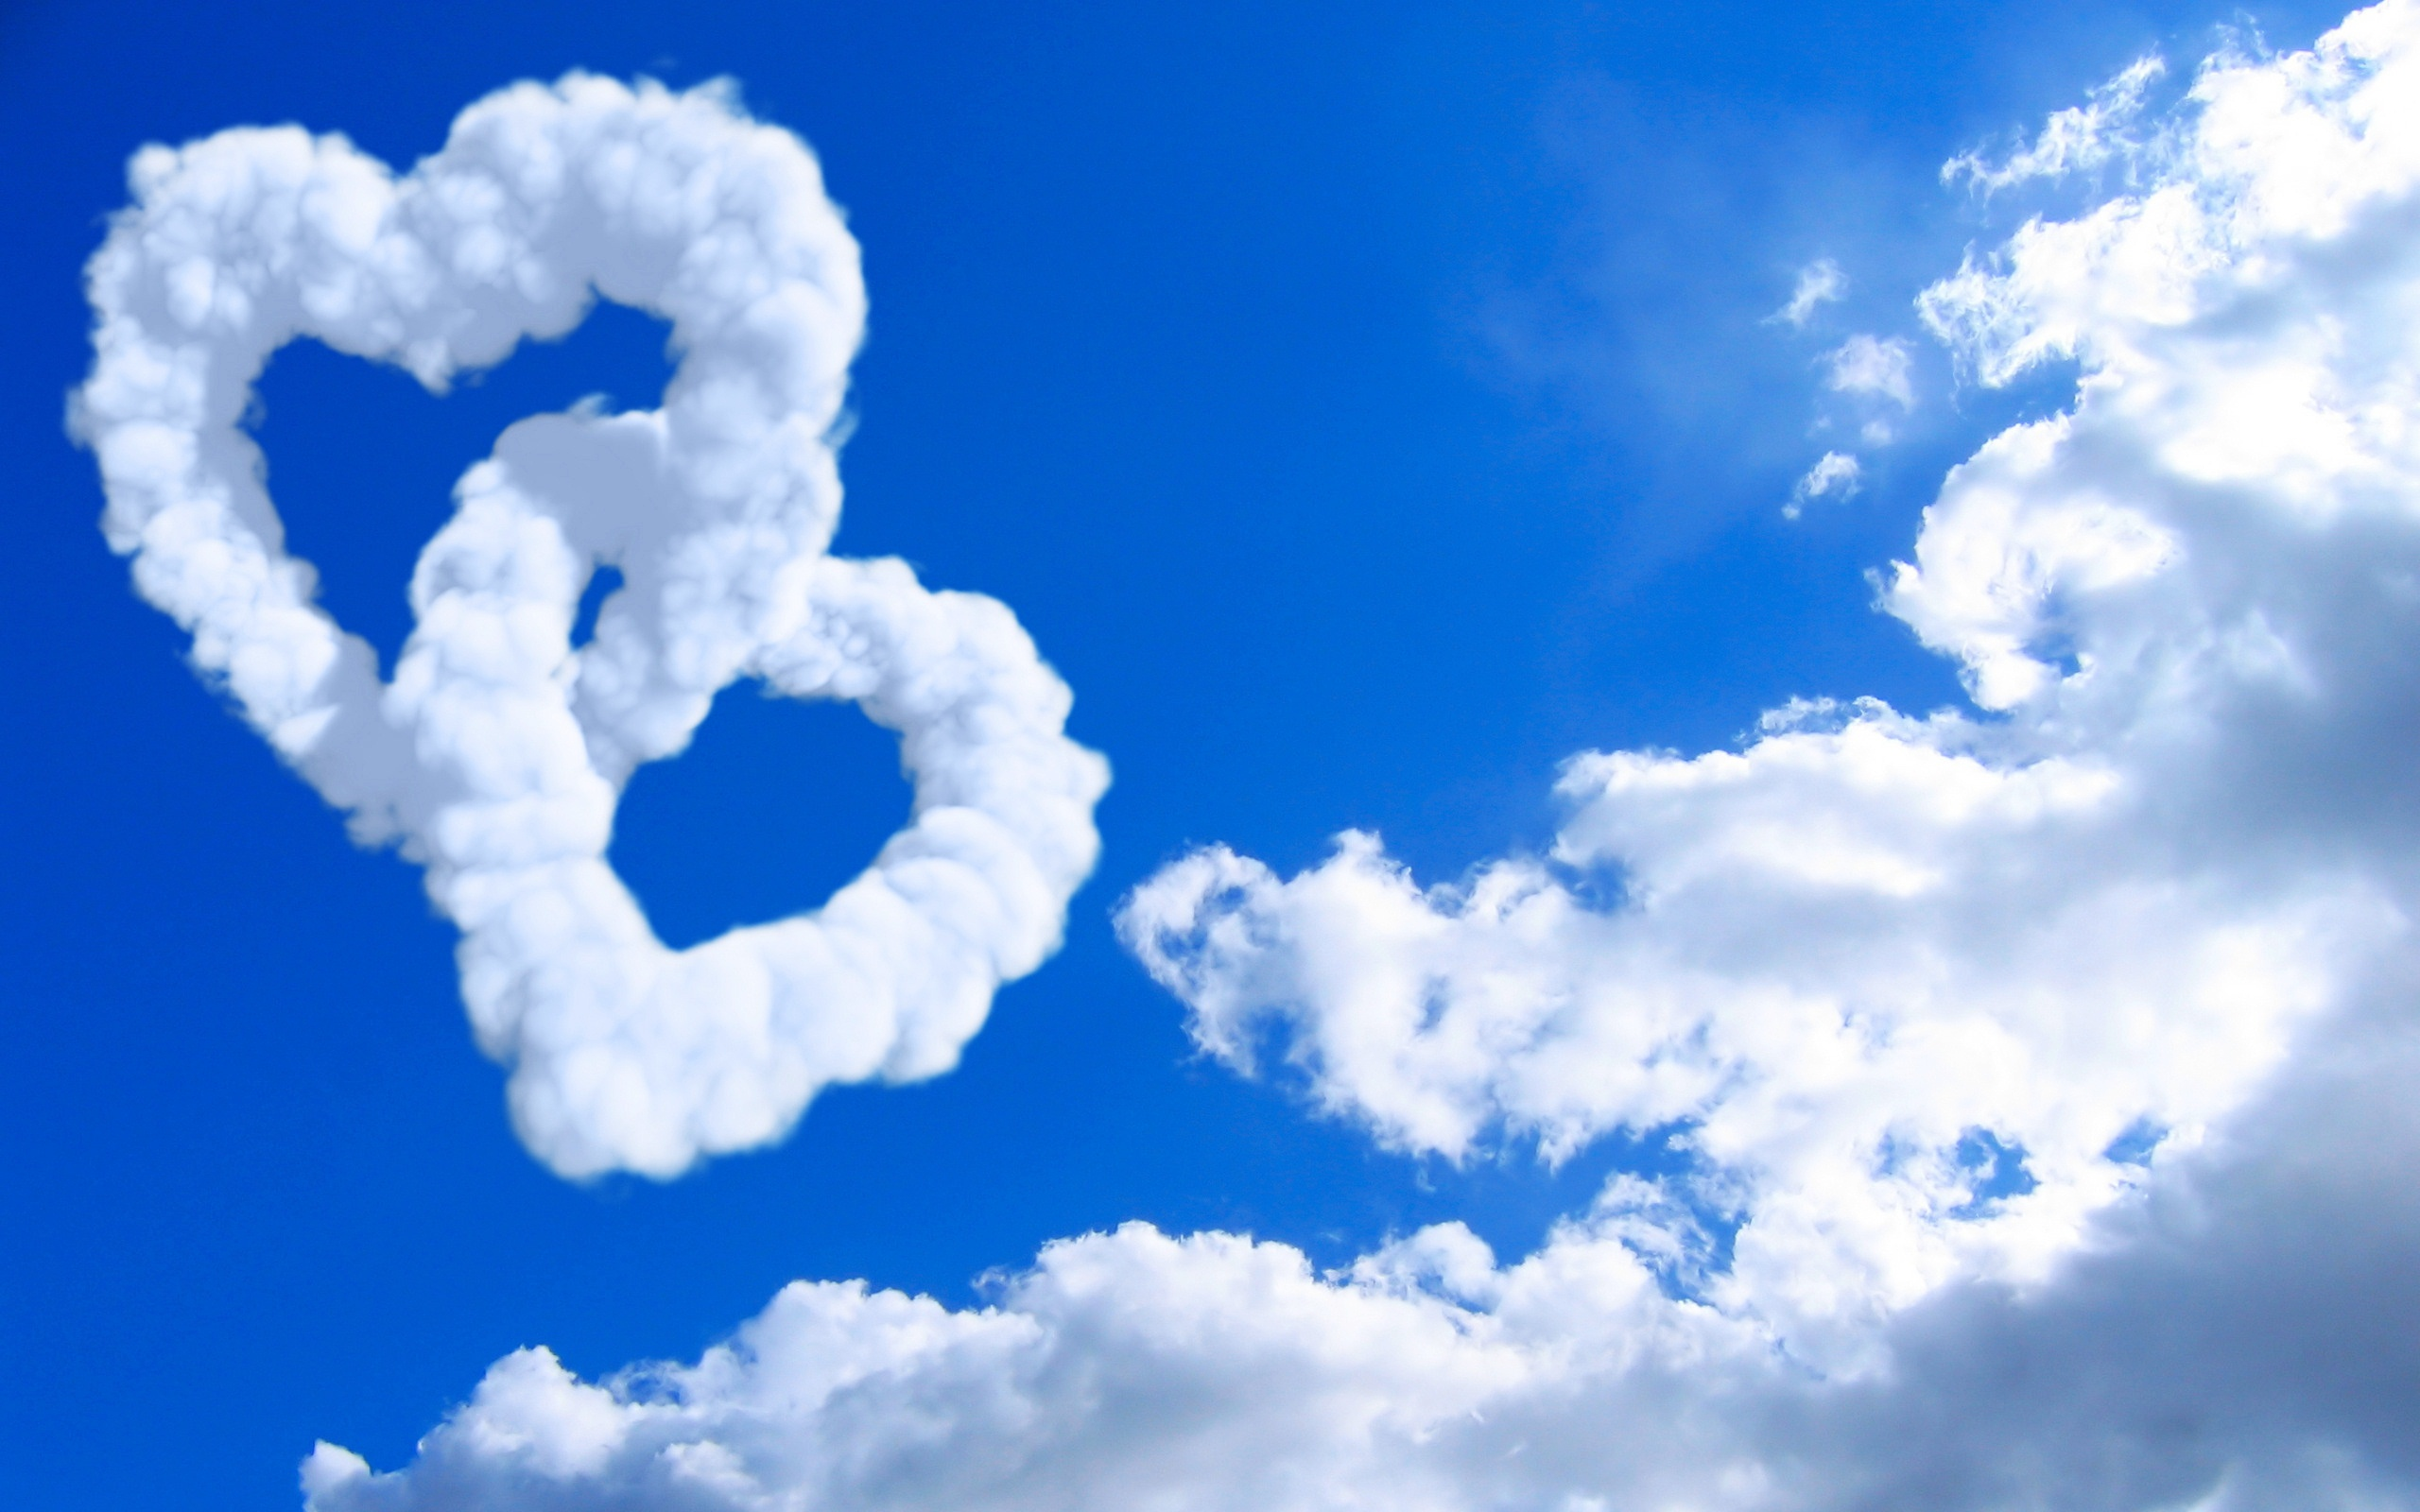 Hearts in Clouds HD Wallpaper Hearts in Clouds Wallpapers for Desktop 2560x1600